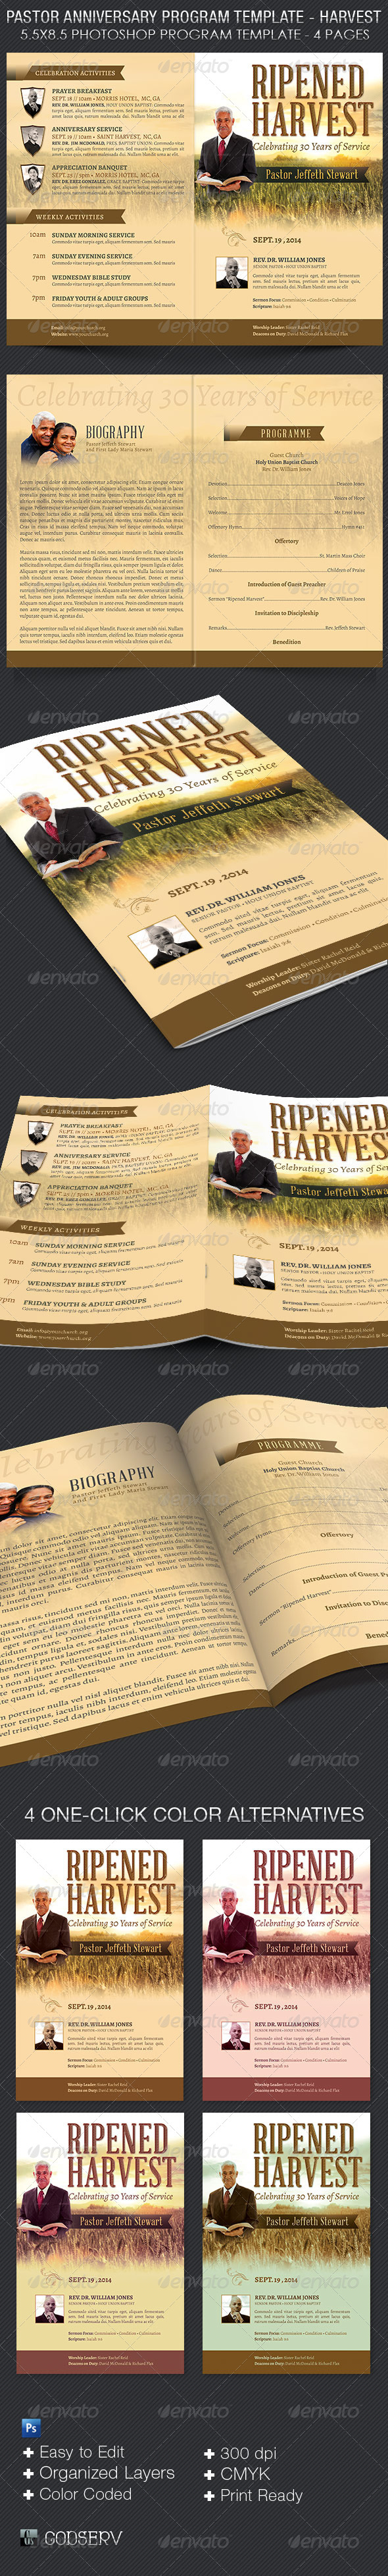 GraphicRiver Pastor Anniversary Program Template Harvest 8505161